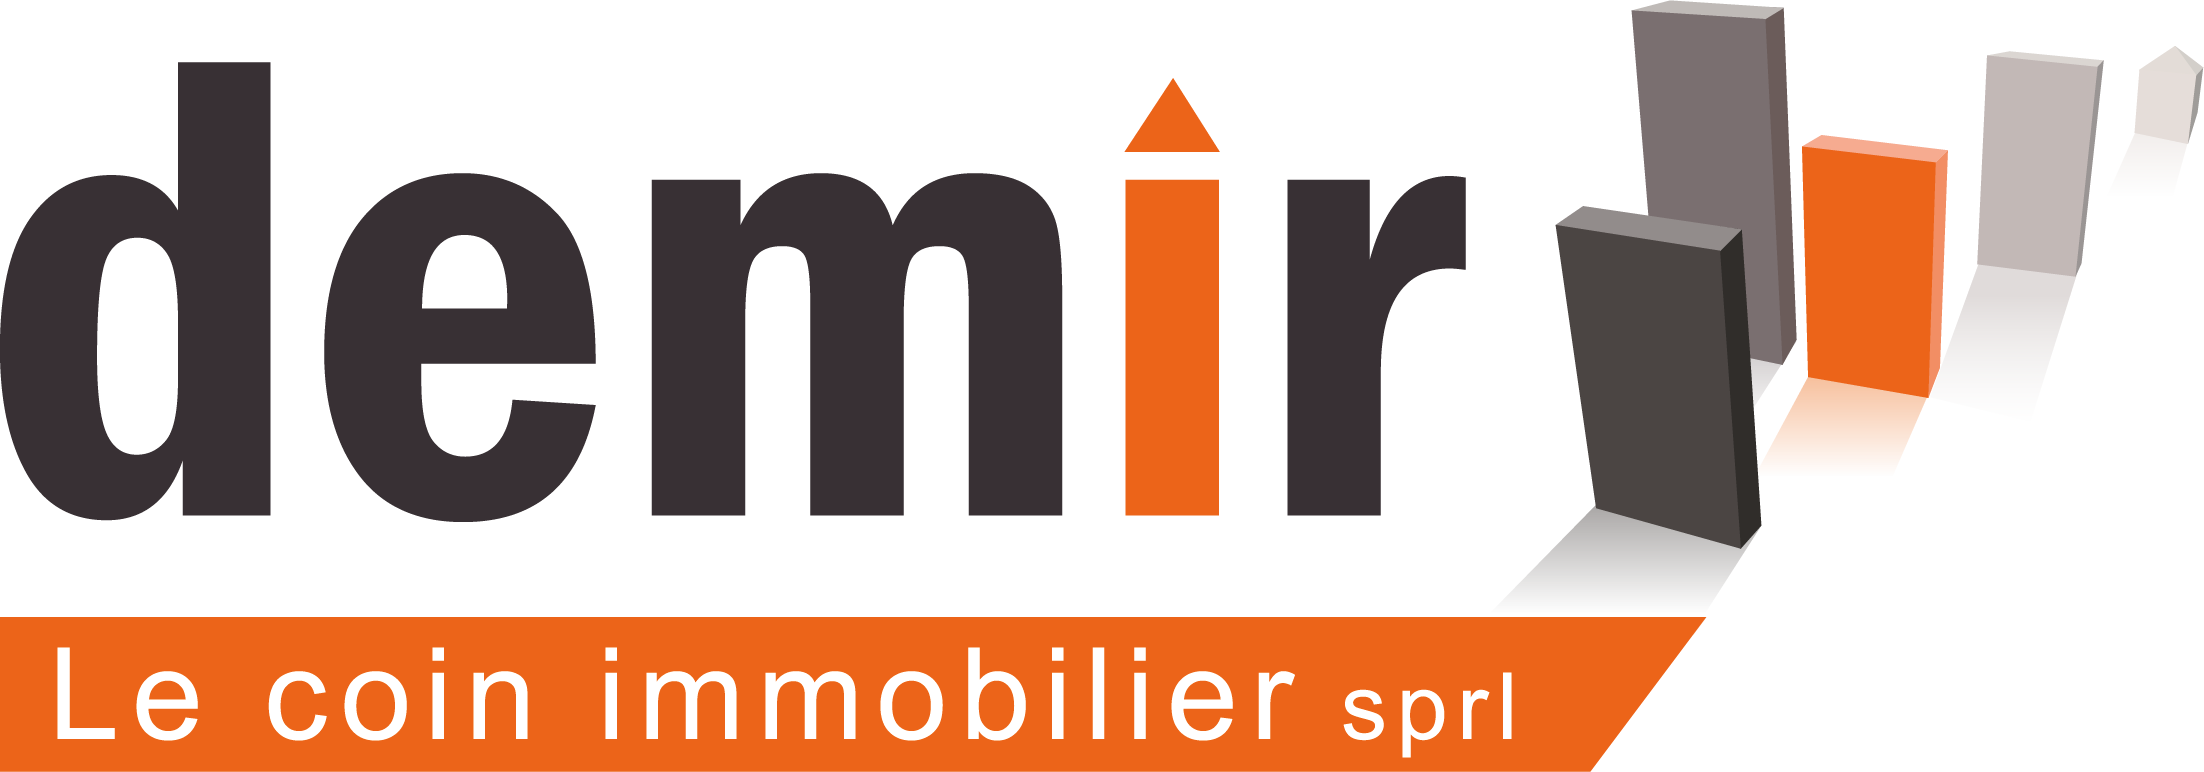 Le Coin Immobilier sprl – demir